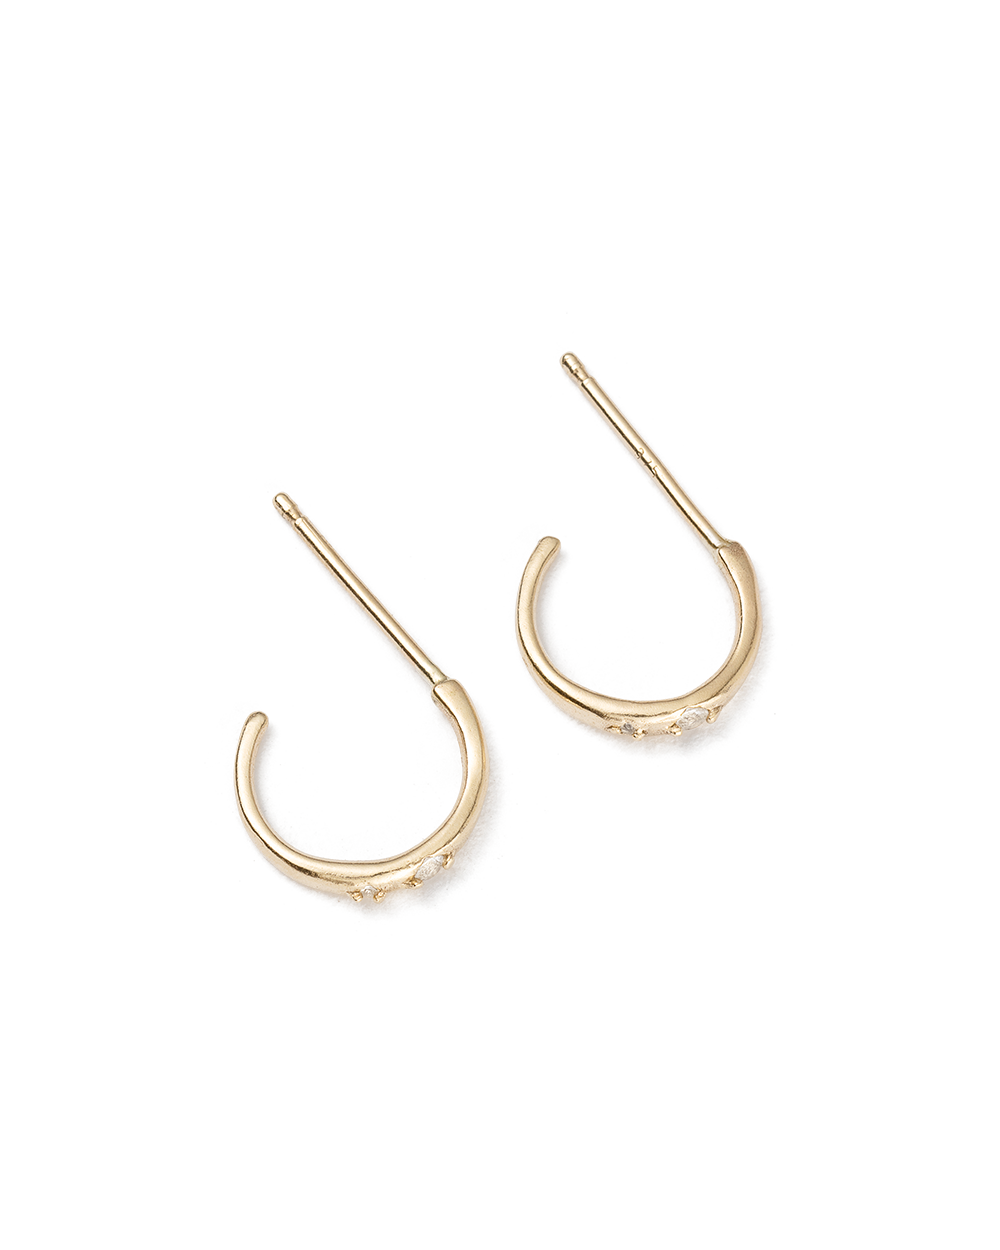 BASK TOPAZ HOOPS (9K GOLD) - SIDE IMAGE